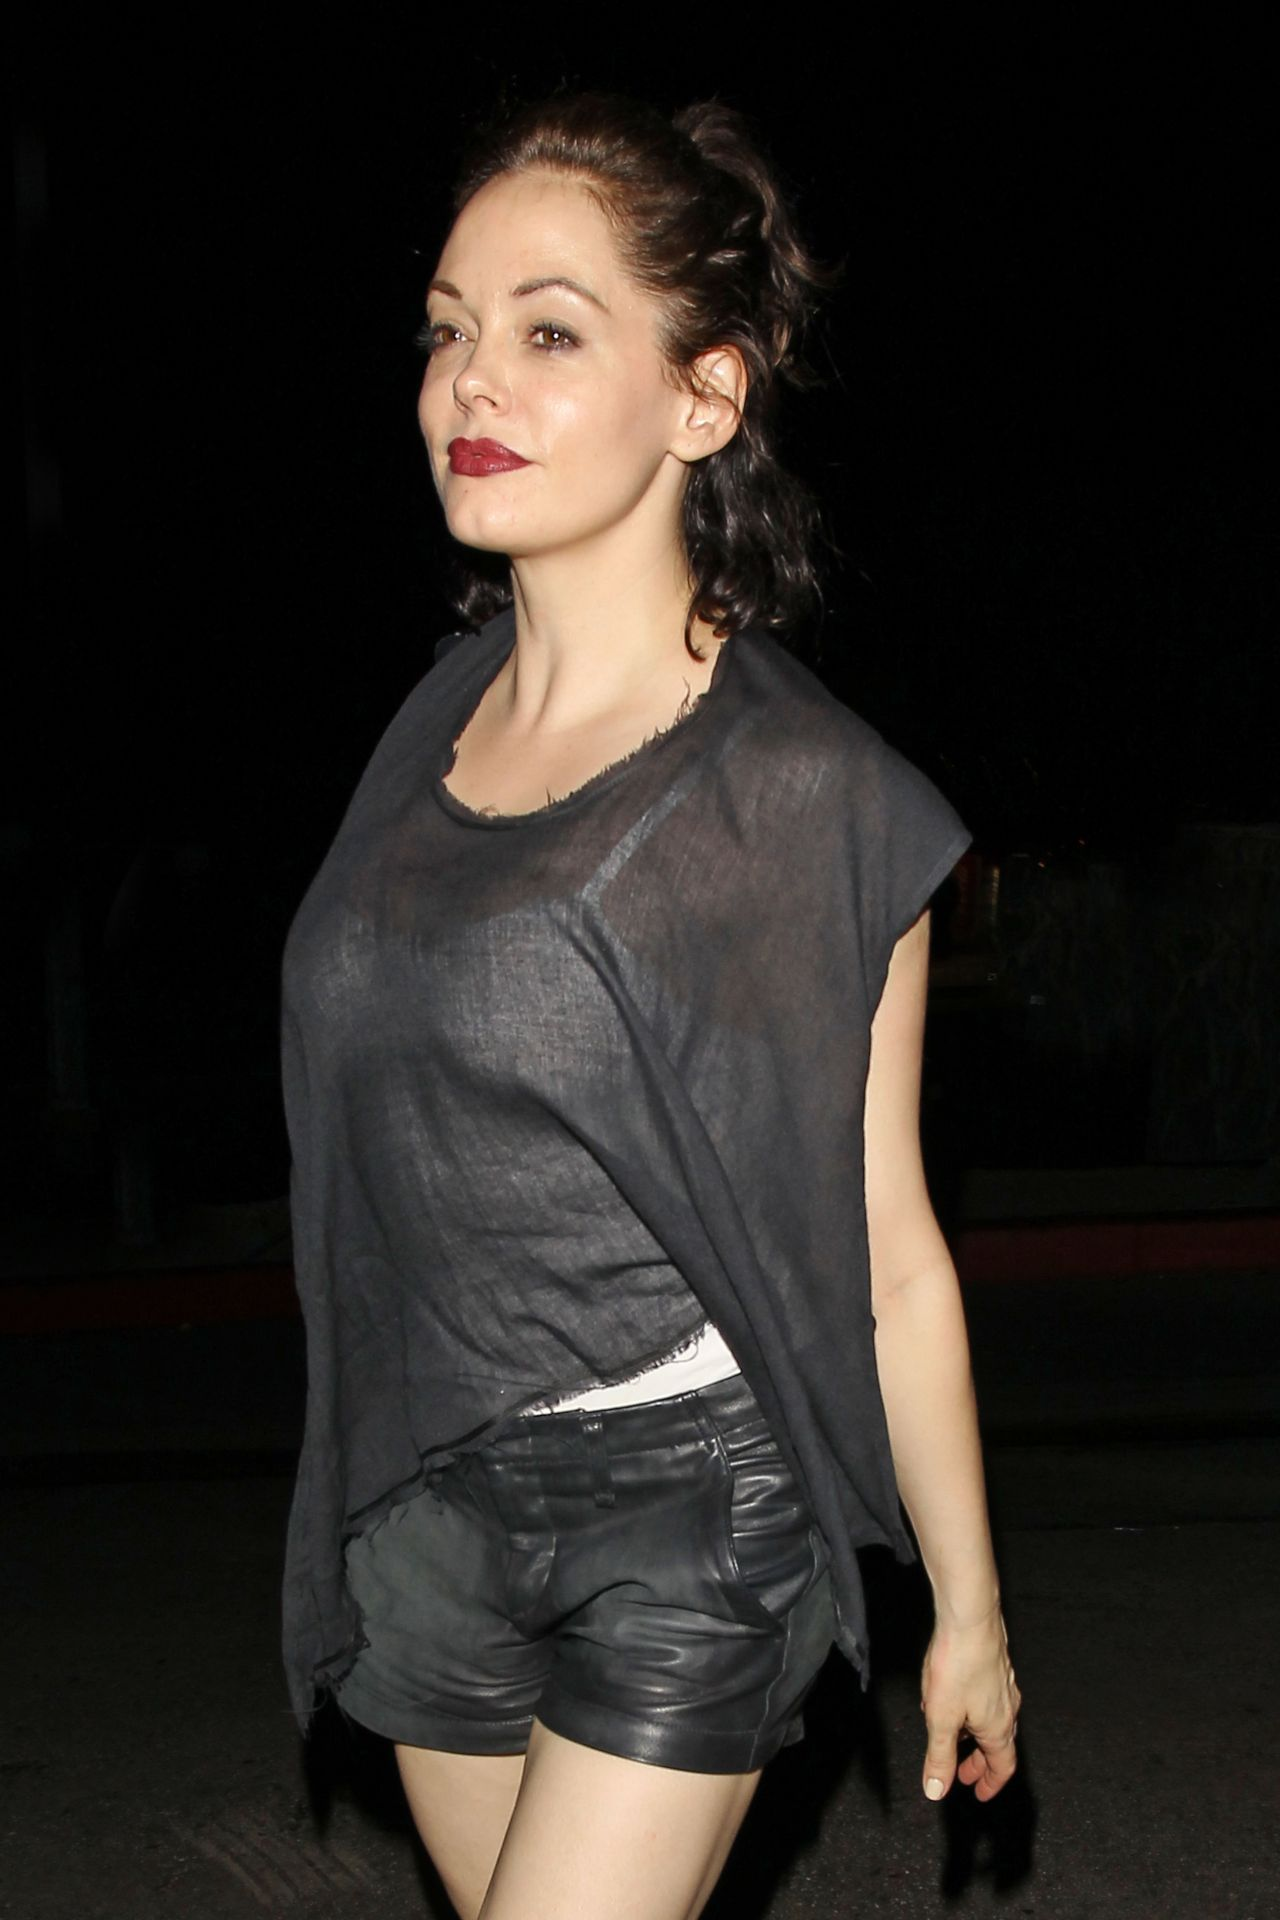 Rose Mcgowan Night Out Style Chateau Marmont In West